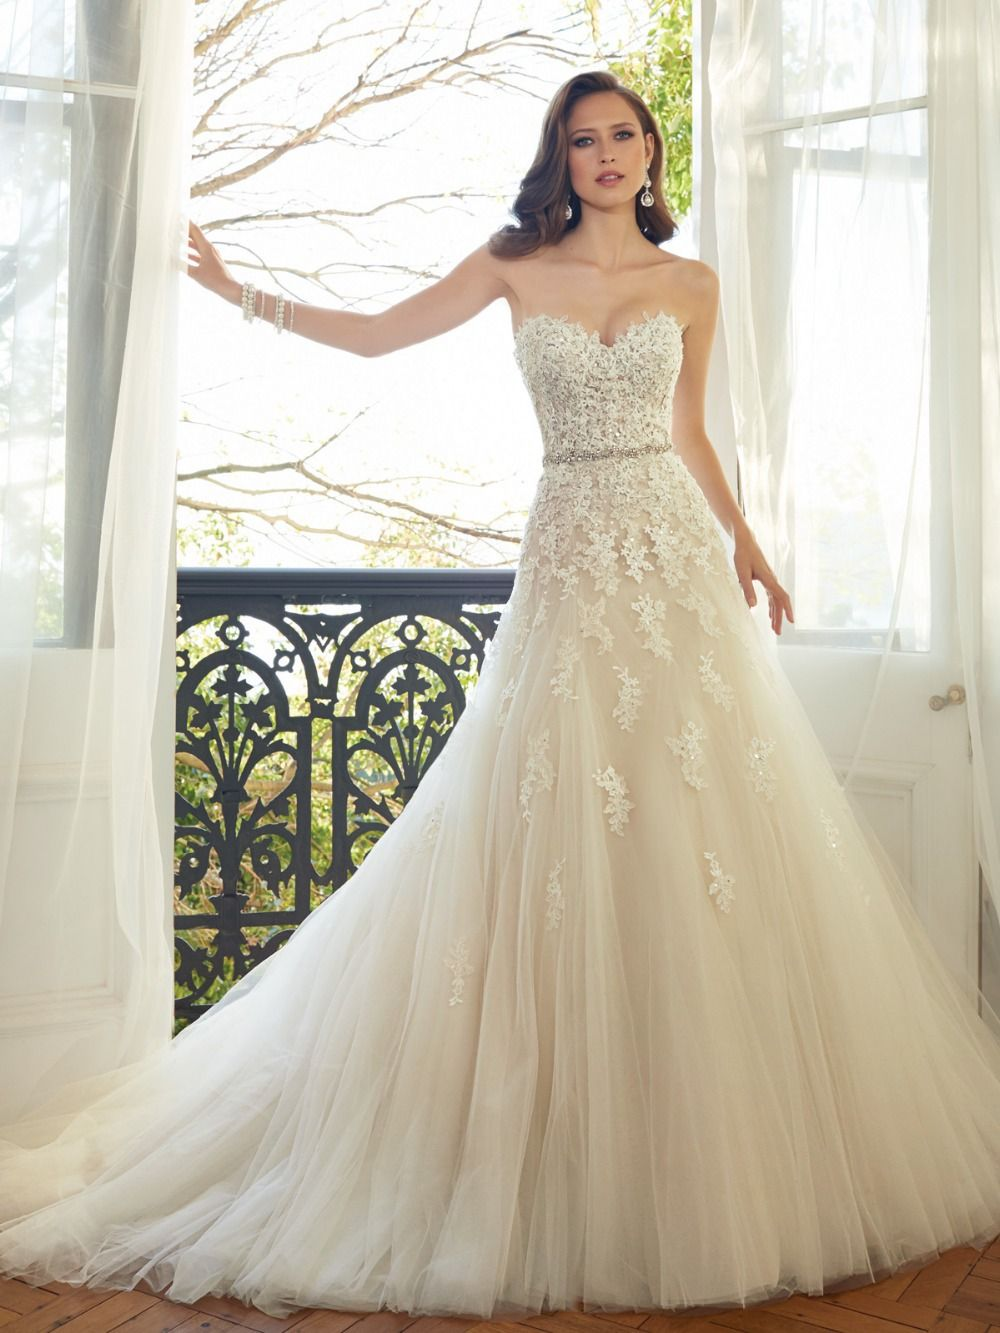 Sweetheart Light Champagne Lace Applique Wedding Dress | Lace ...